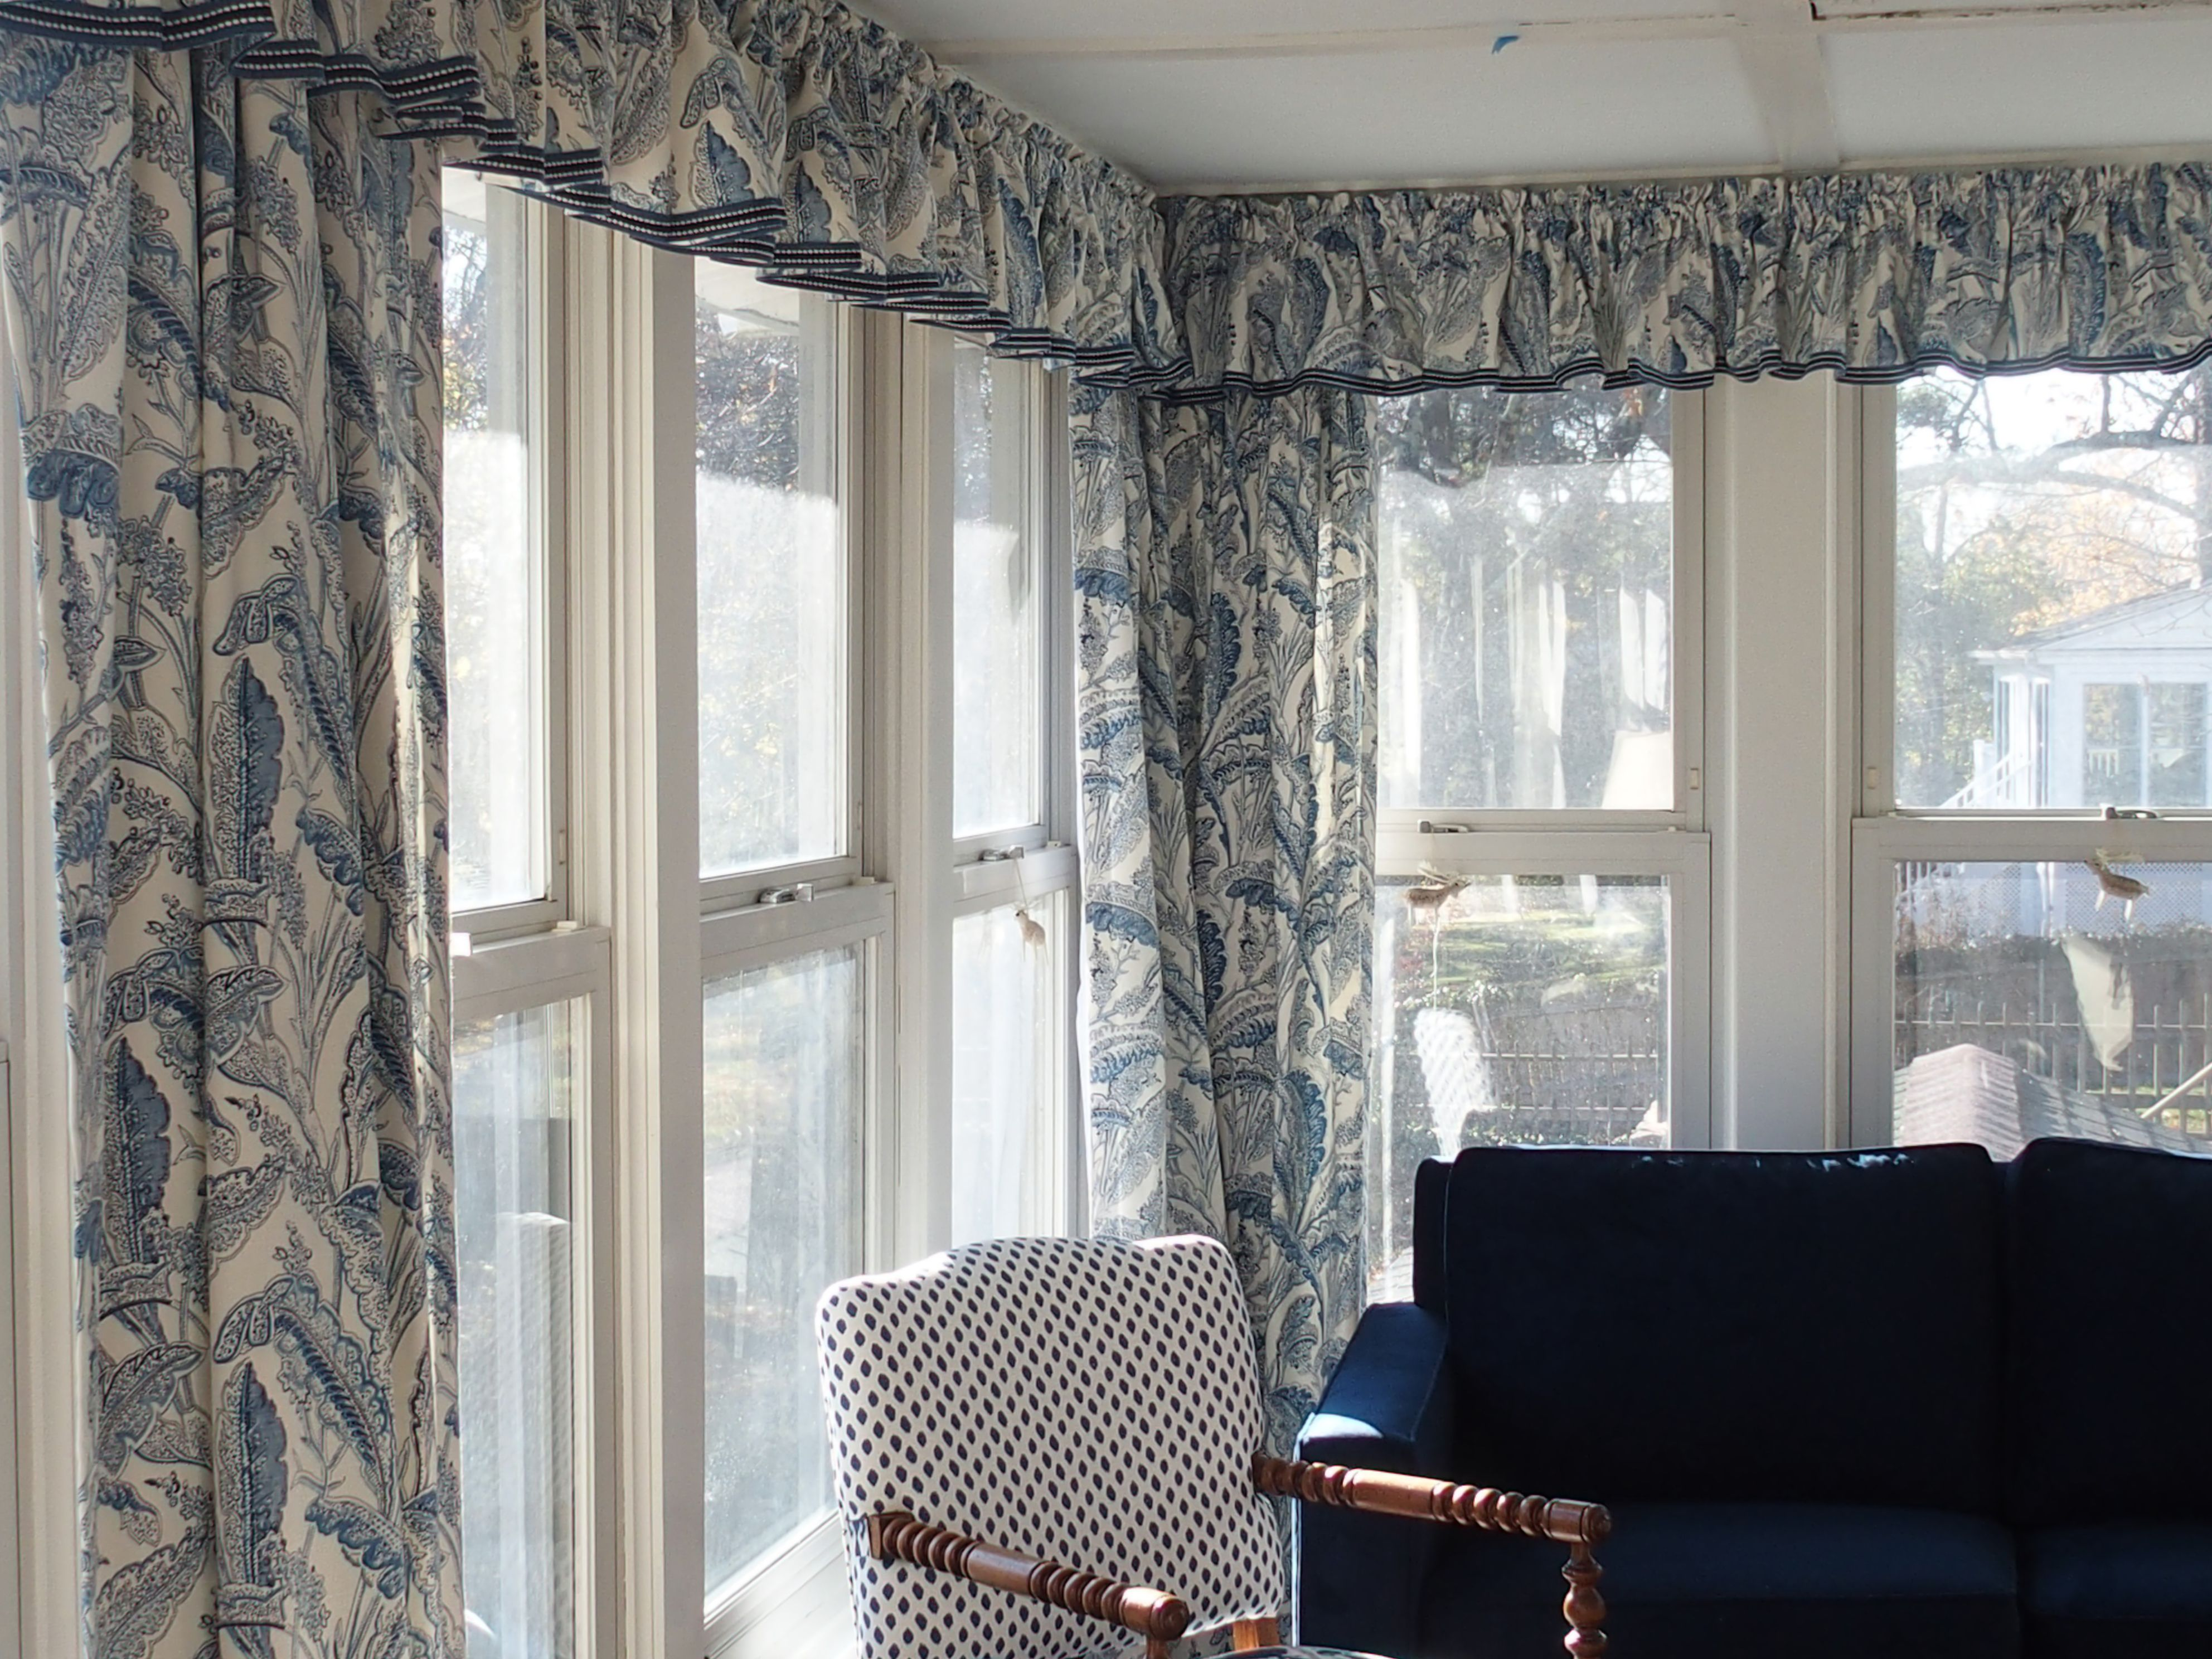 living room window valance ideas%0A http   curtaincallct com  Rod pocket valances and draperies in a timeless